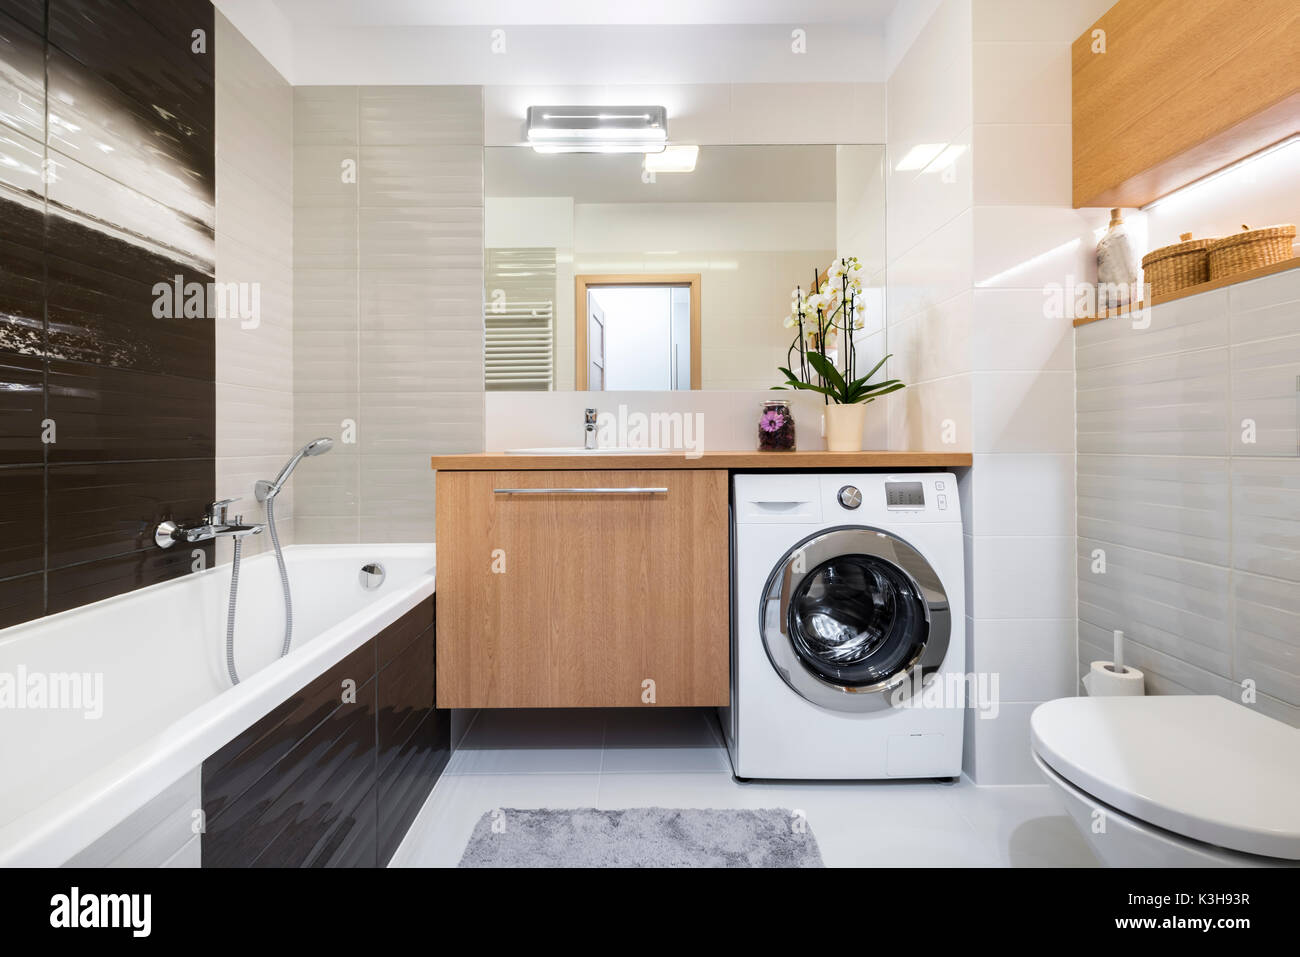 Modern Bathroom Interior Design In Wooden And Gray Finish Stock Photo Alamy